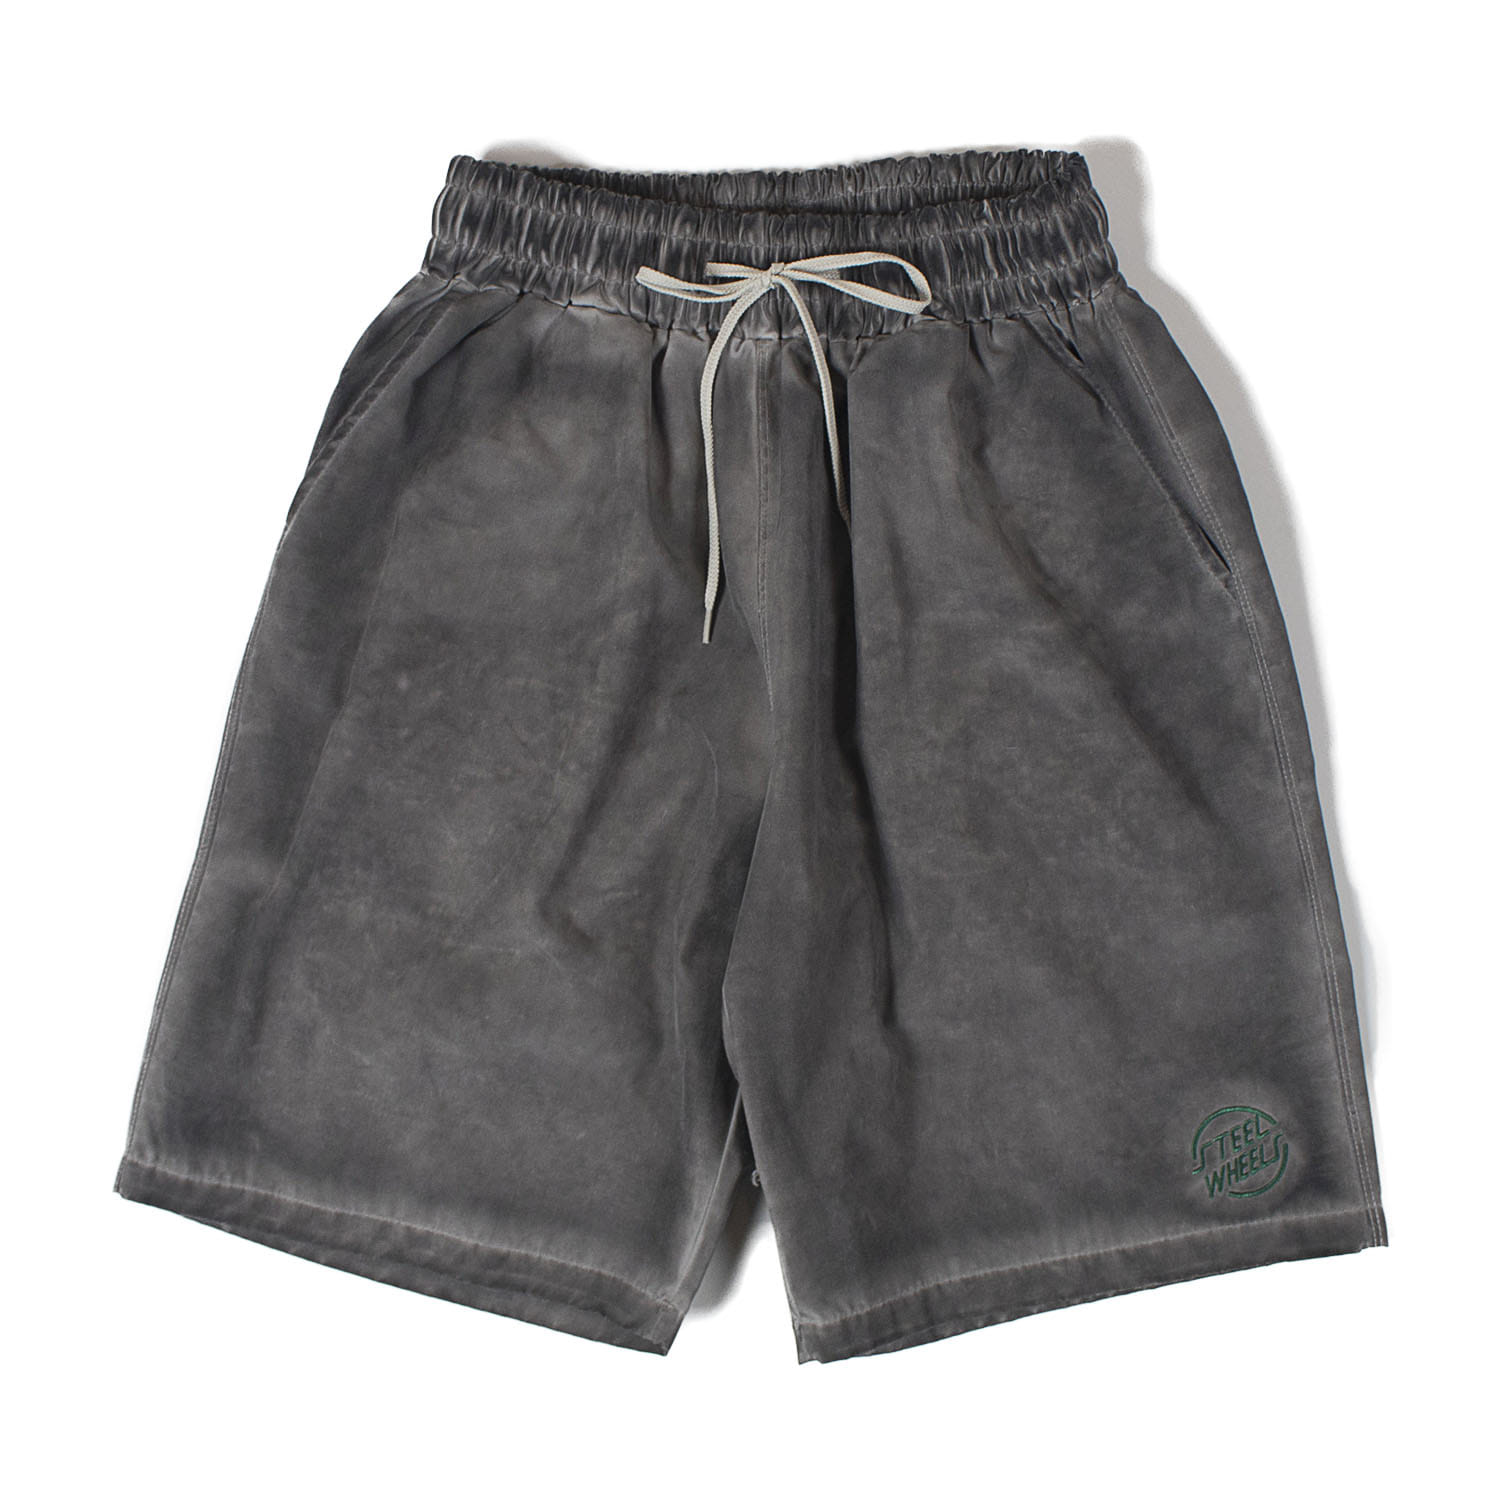 Hand garment Dyeing Shorts (Charcoal)